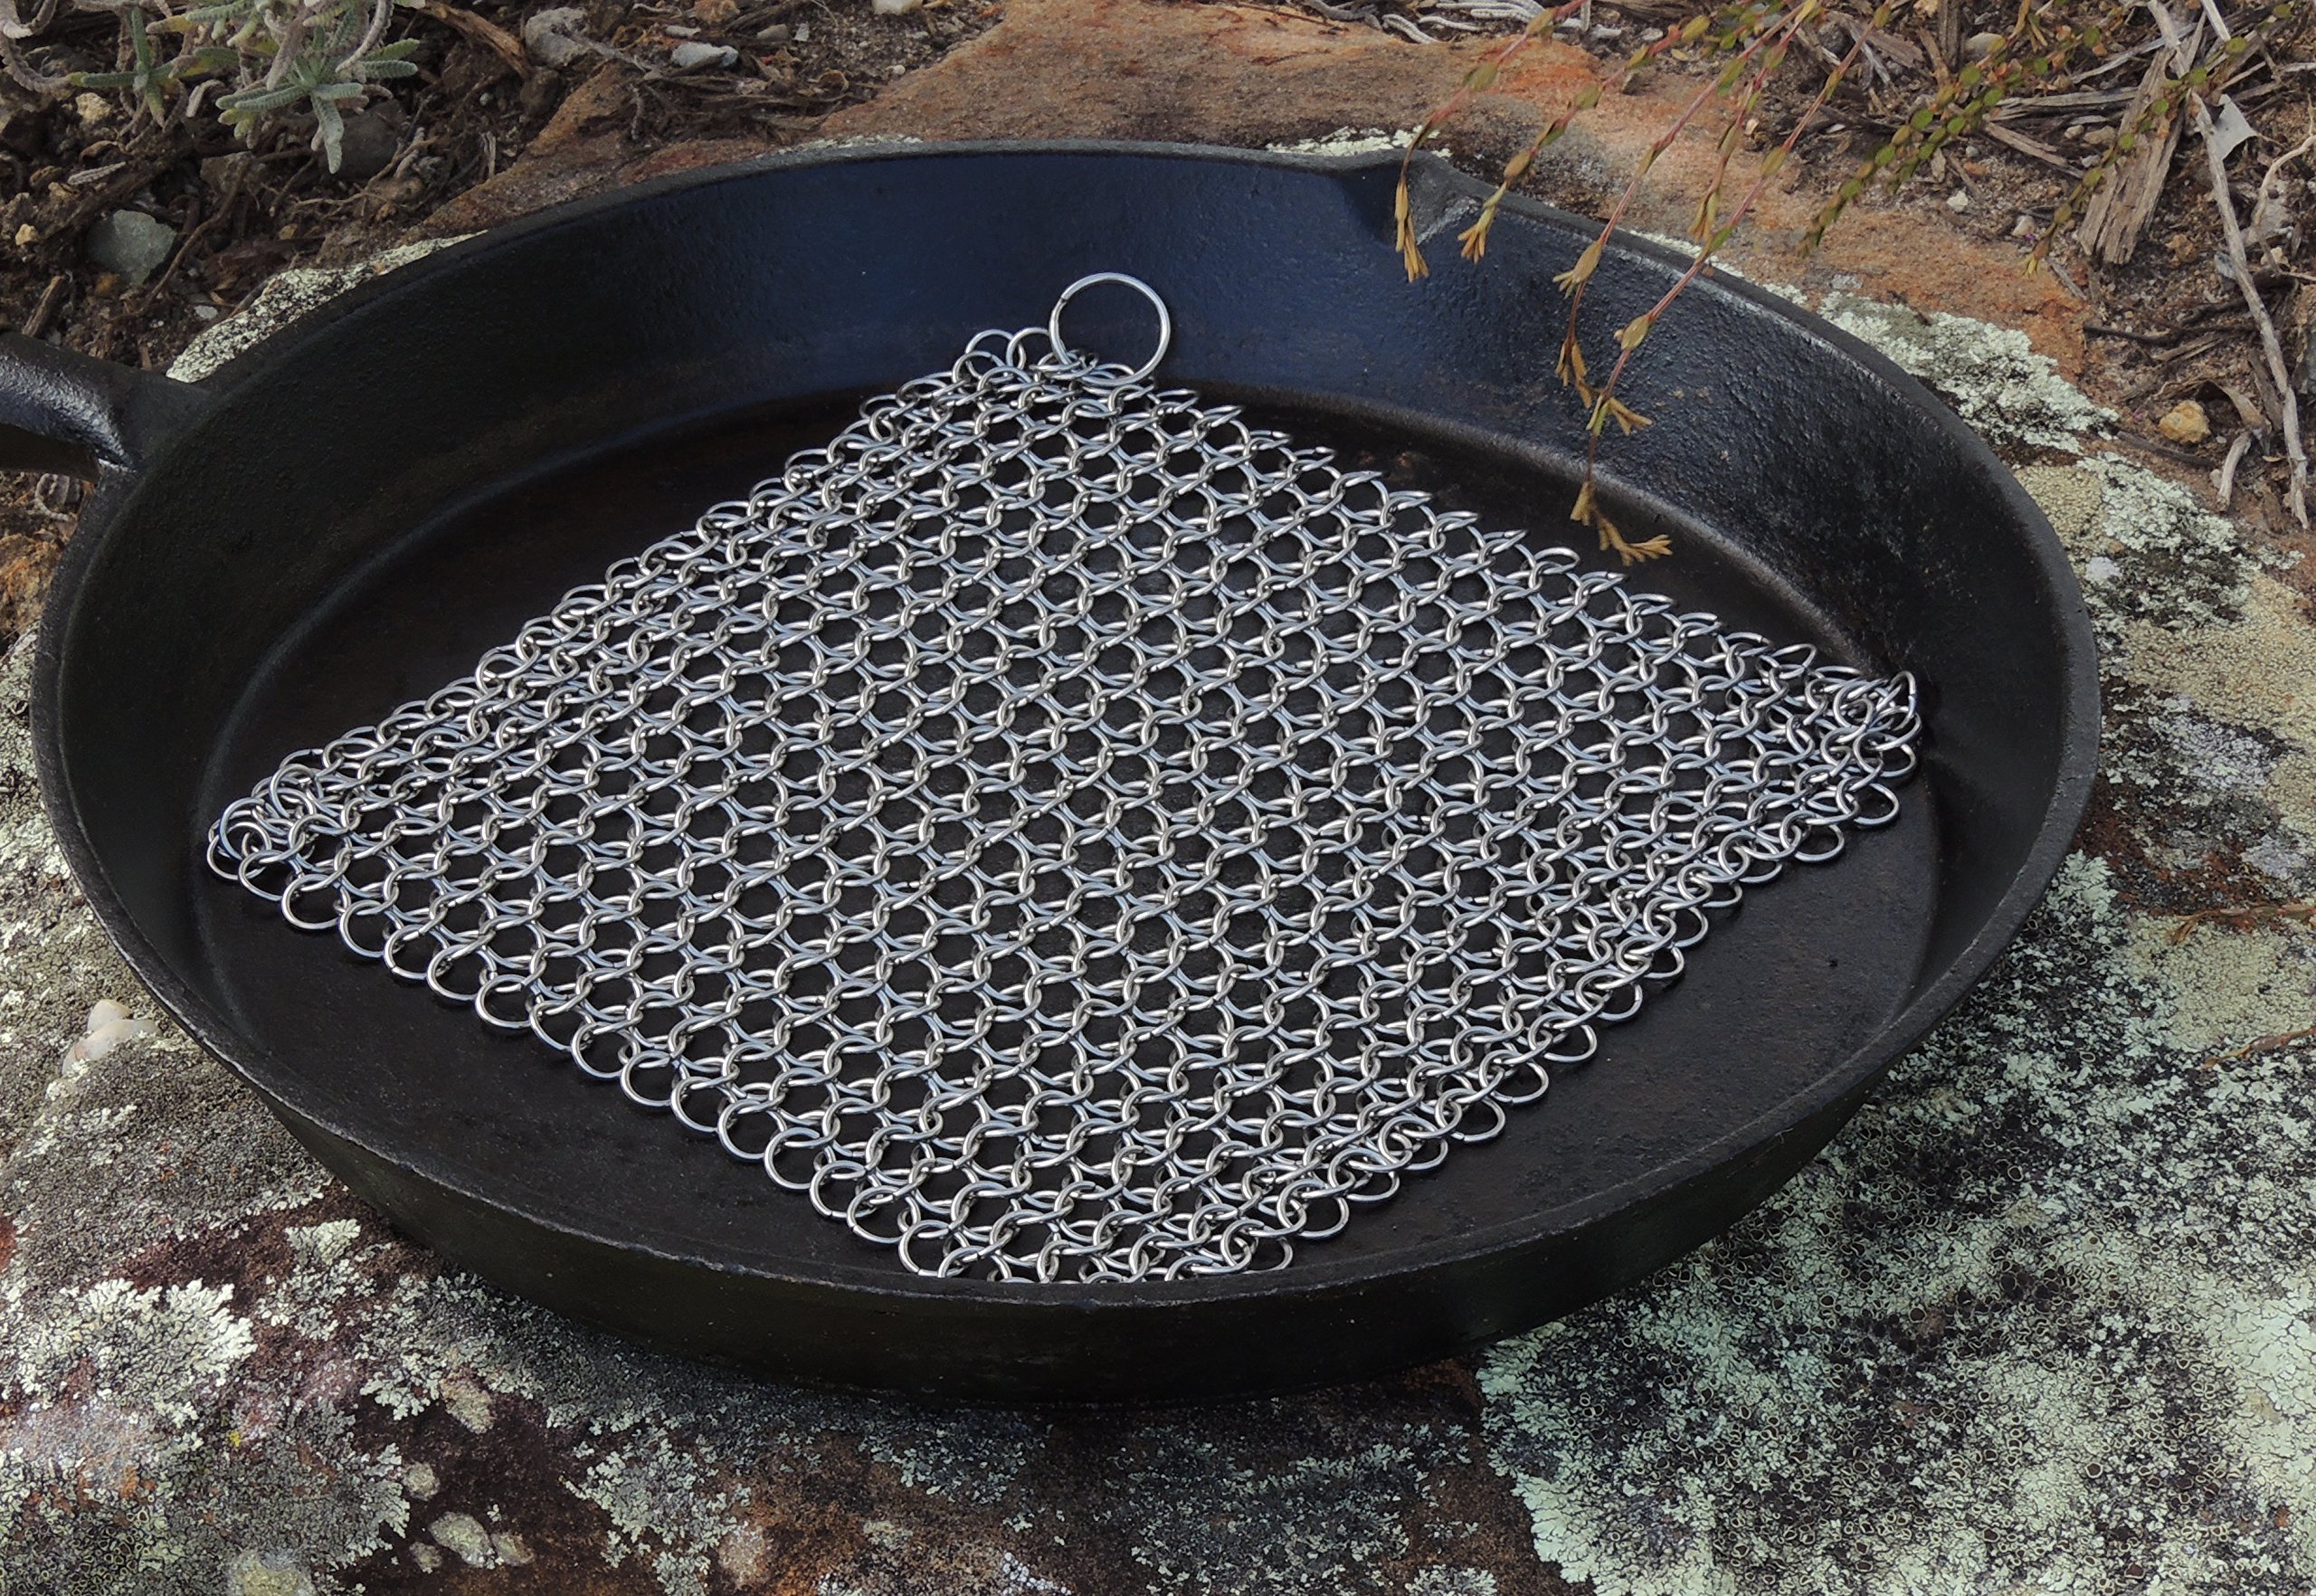 Cast Iron Cleaner and Scrubber by Küche Chef. XL 8x8 Inch Premium 316 Stainless Steel Chainmail Scrubber by Kuche Chef (Image #8)